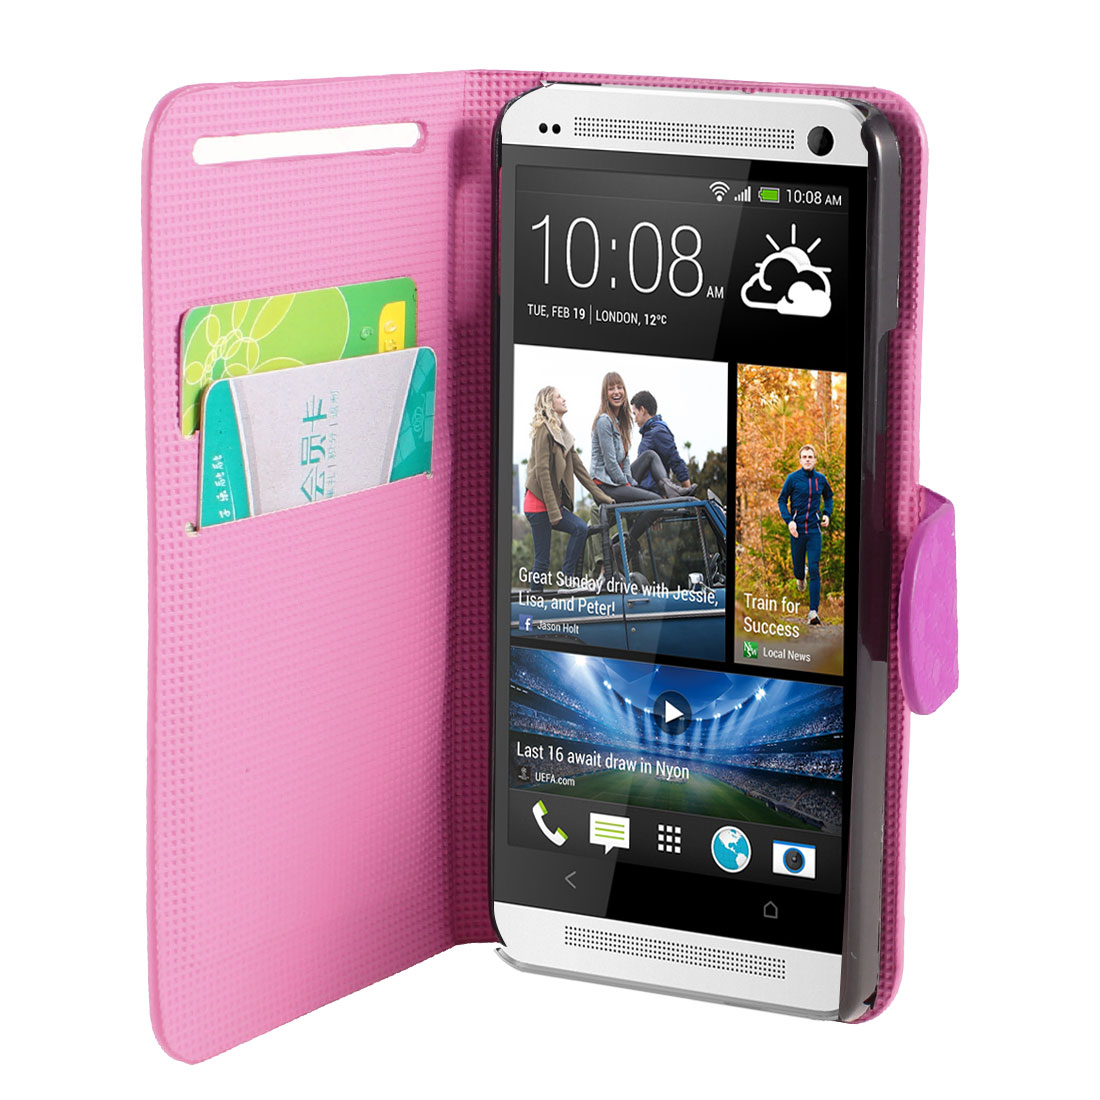 Fuchsia Faux Leather Hexagon Pattern Flip Stand Pouch Case Cover for HTC One M7